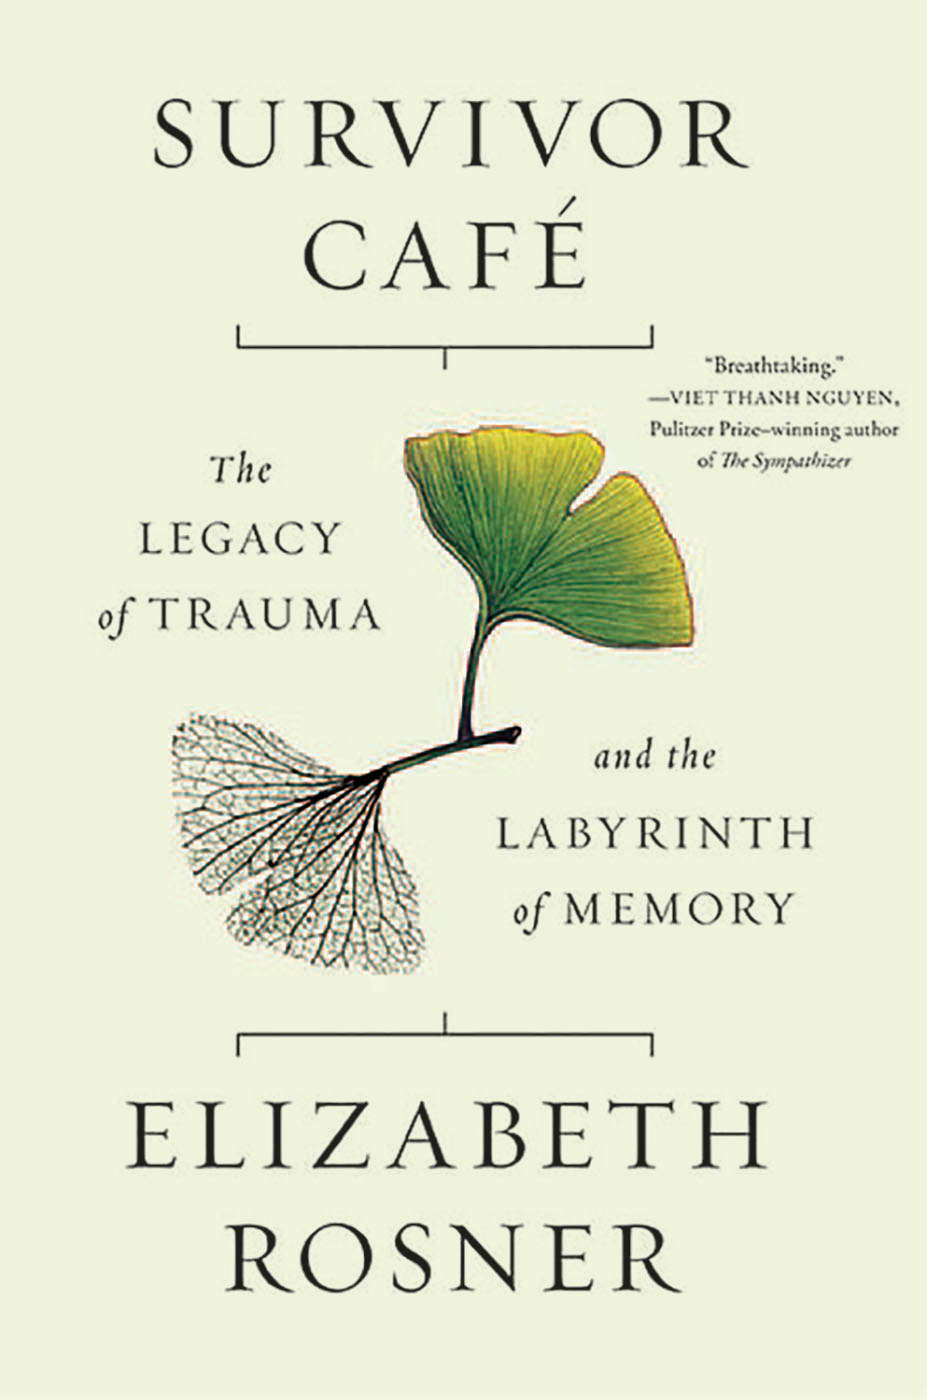 'Survivor Cafe: The Legacy of Trauma and the Labyrinth of Memory' by Elizabeth Rosner